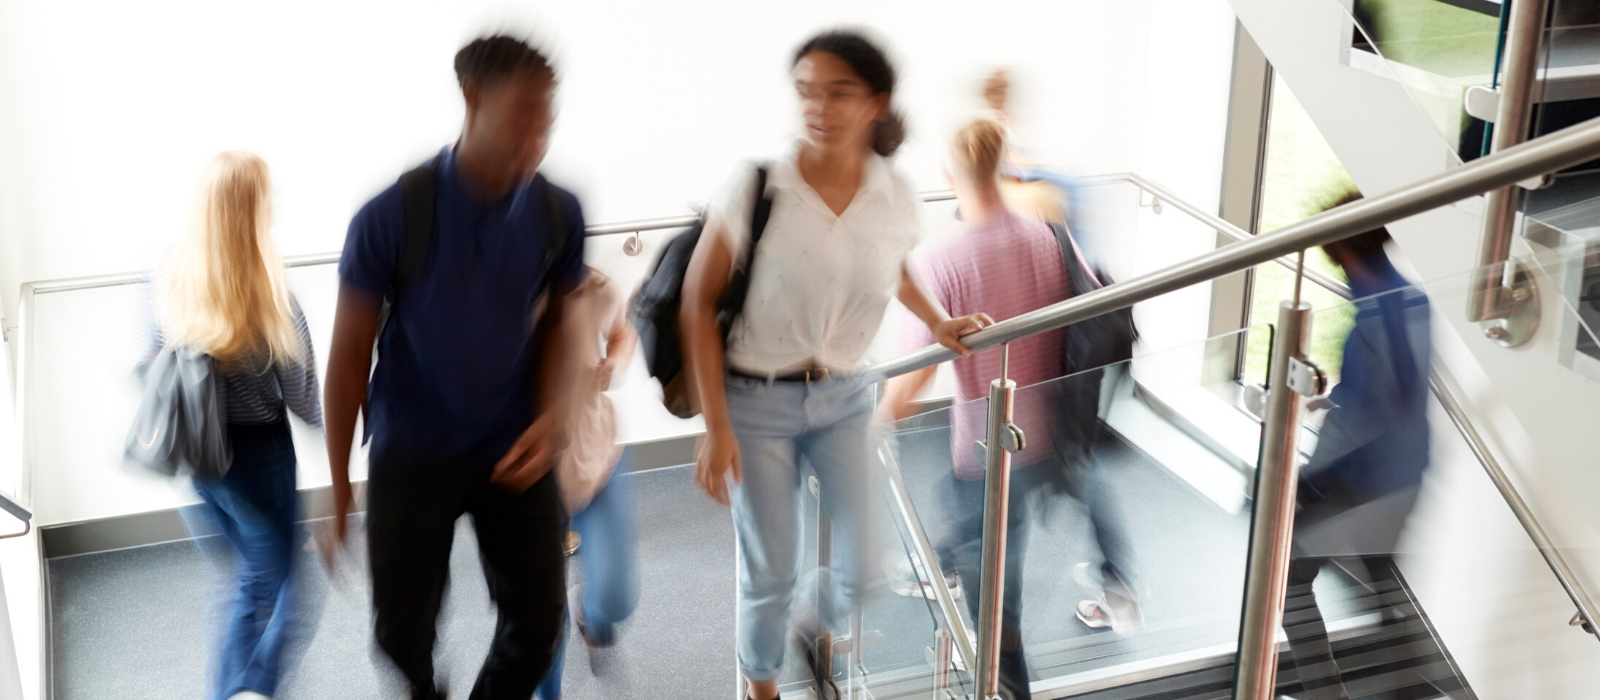 A busy university hallway filled with blurred images of students.